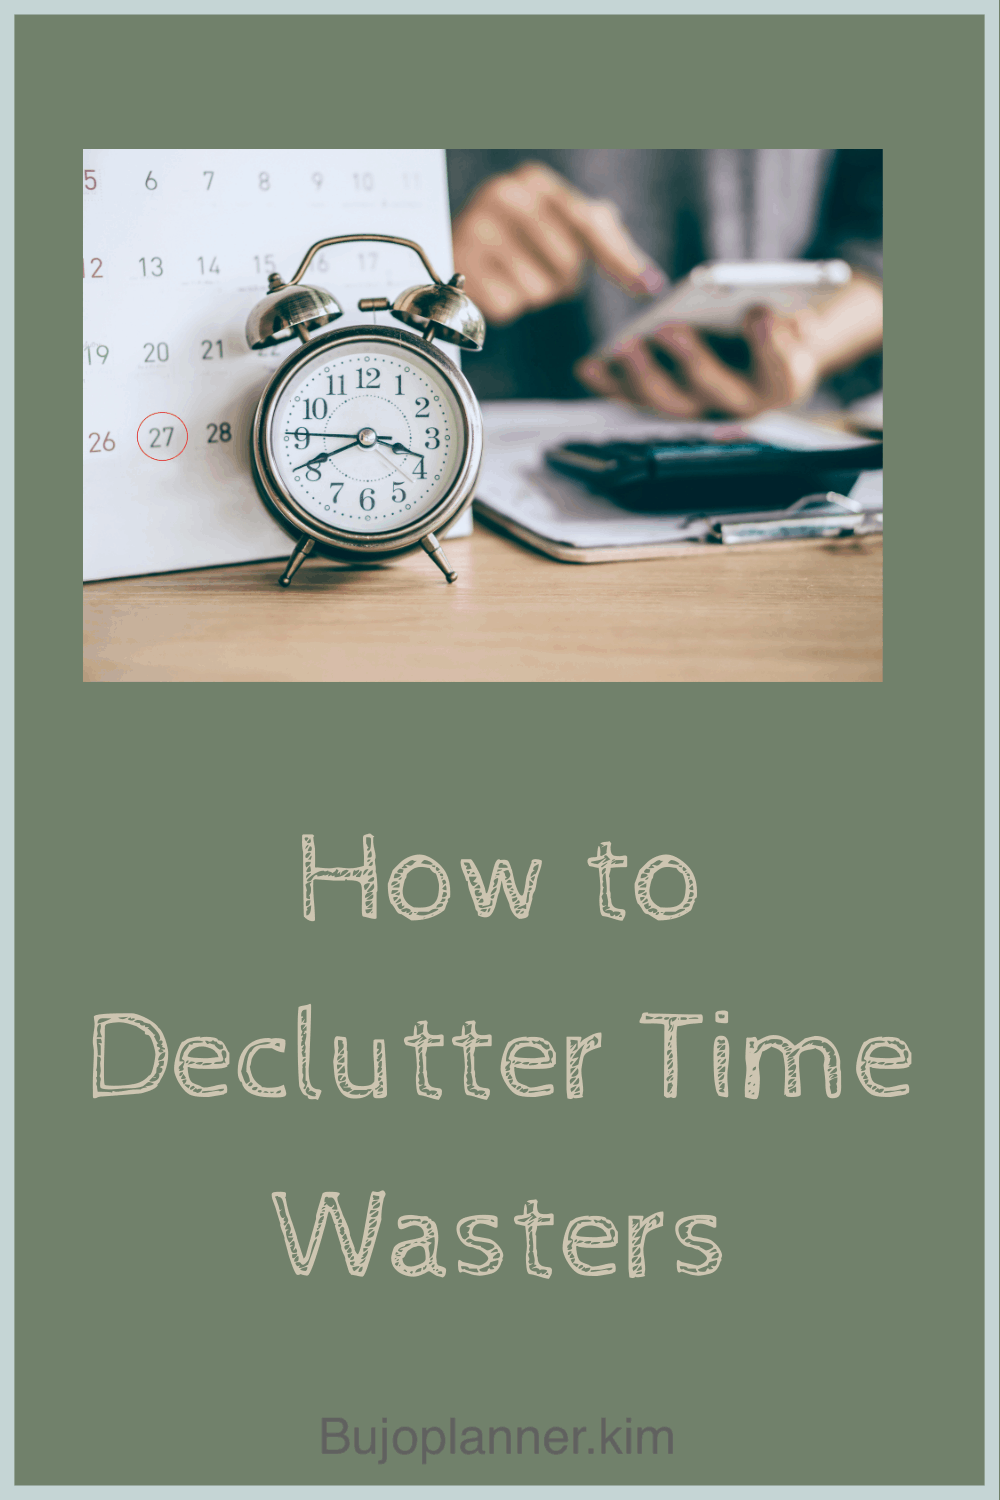 Picture of clock, with title - how to declutter time wasters